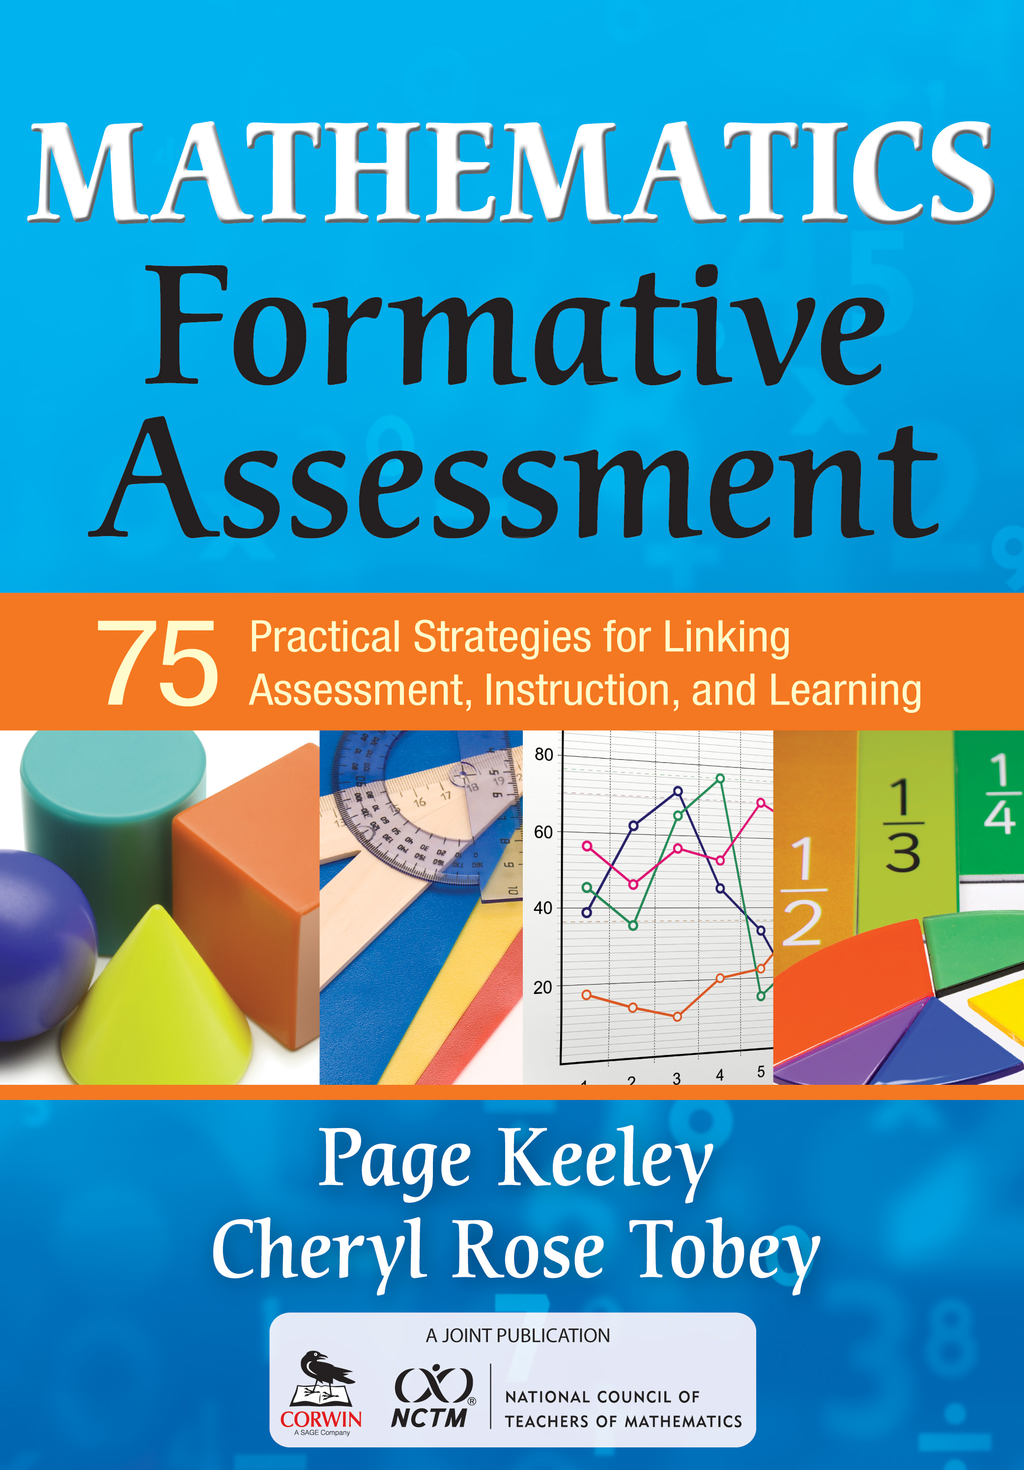 Mathematics Formative Assessment